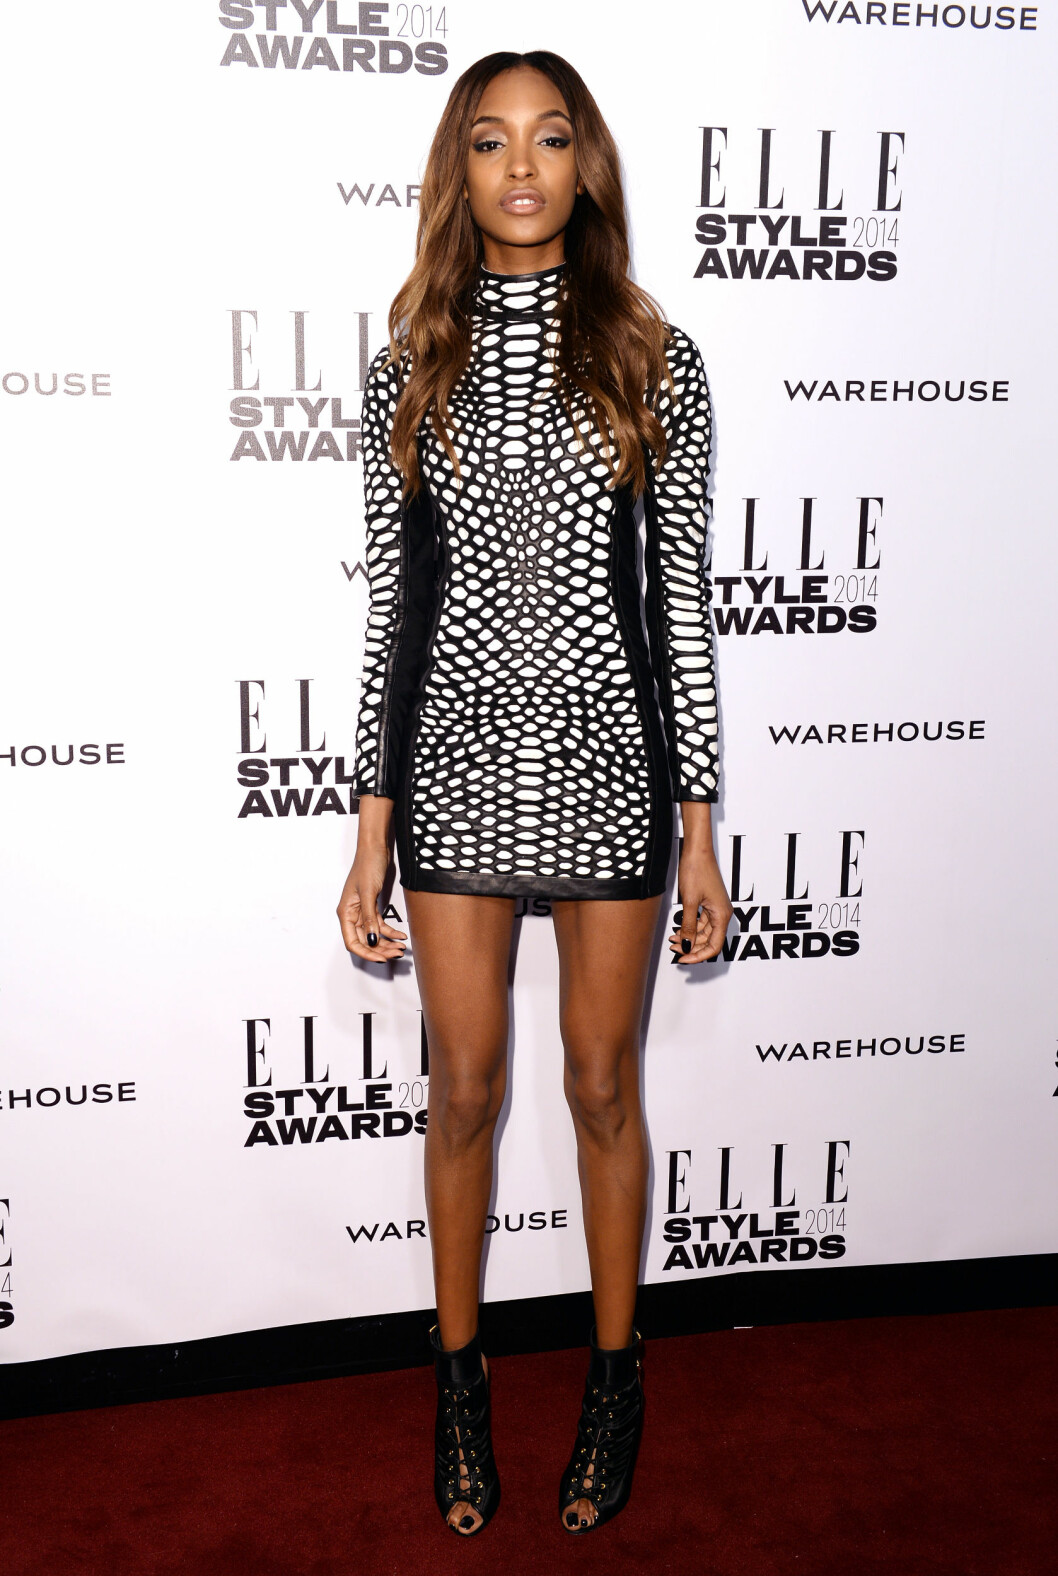 Jourdan Dunn Foto: REX/David Fisher/All Over Press